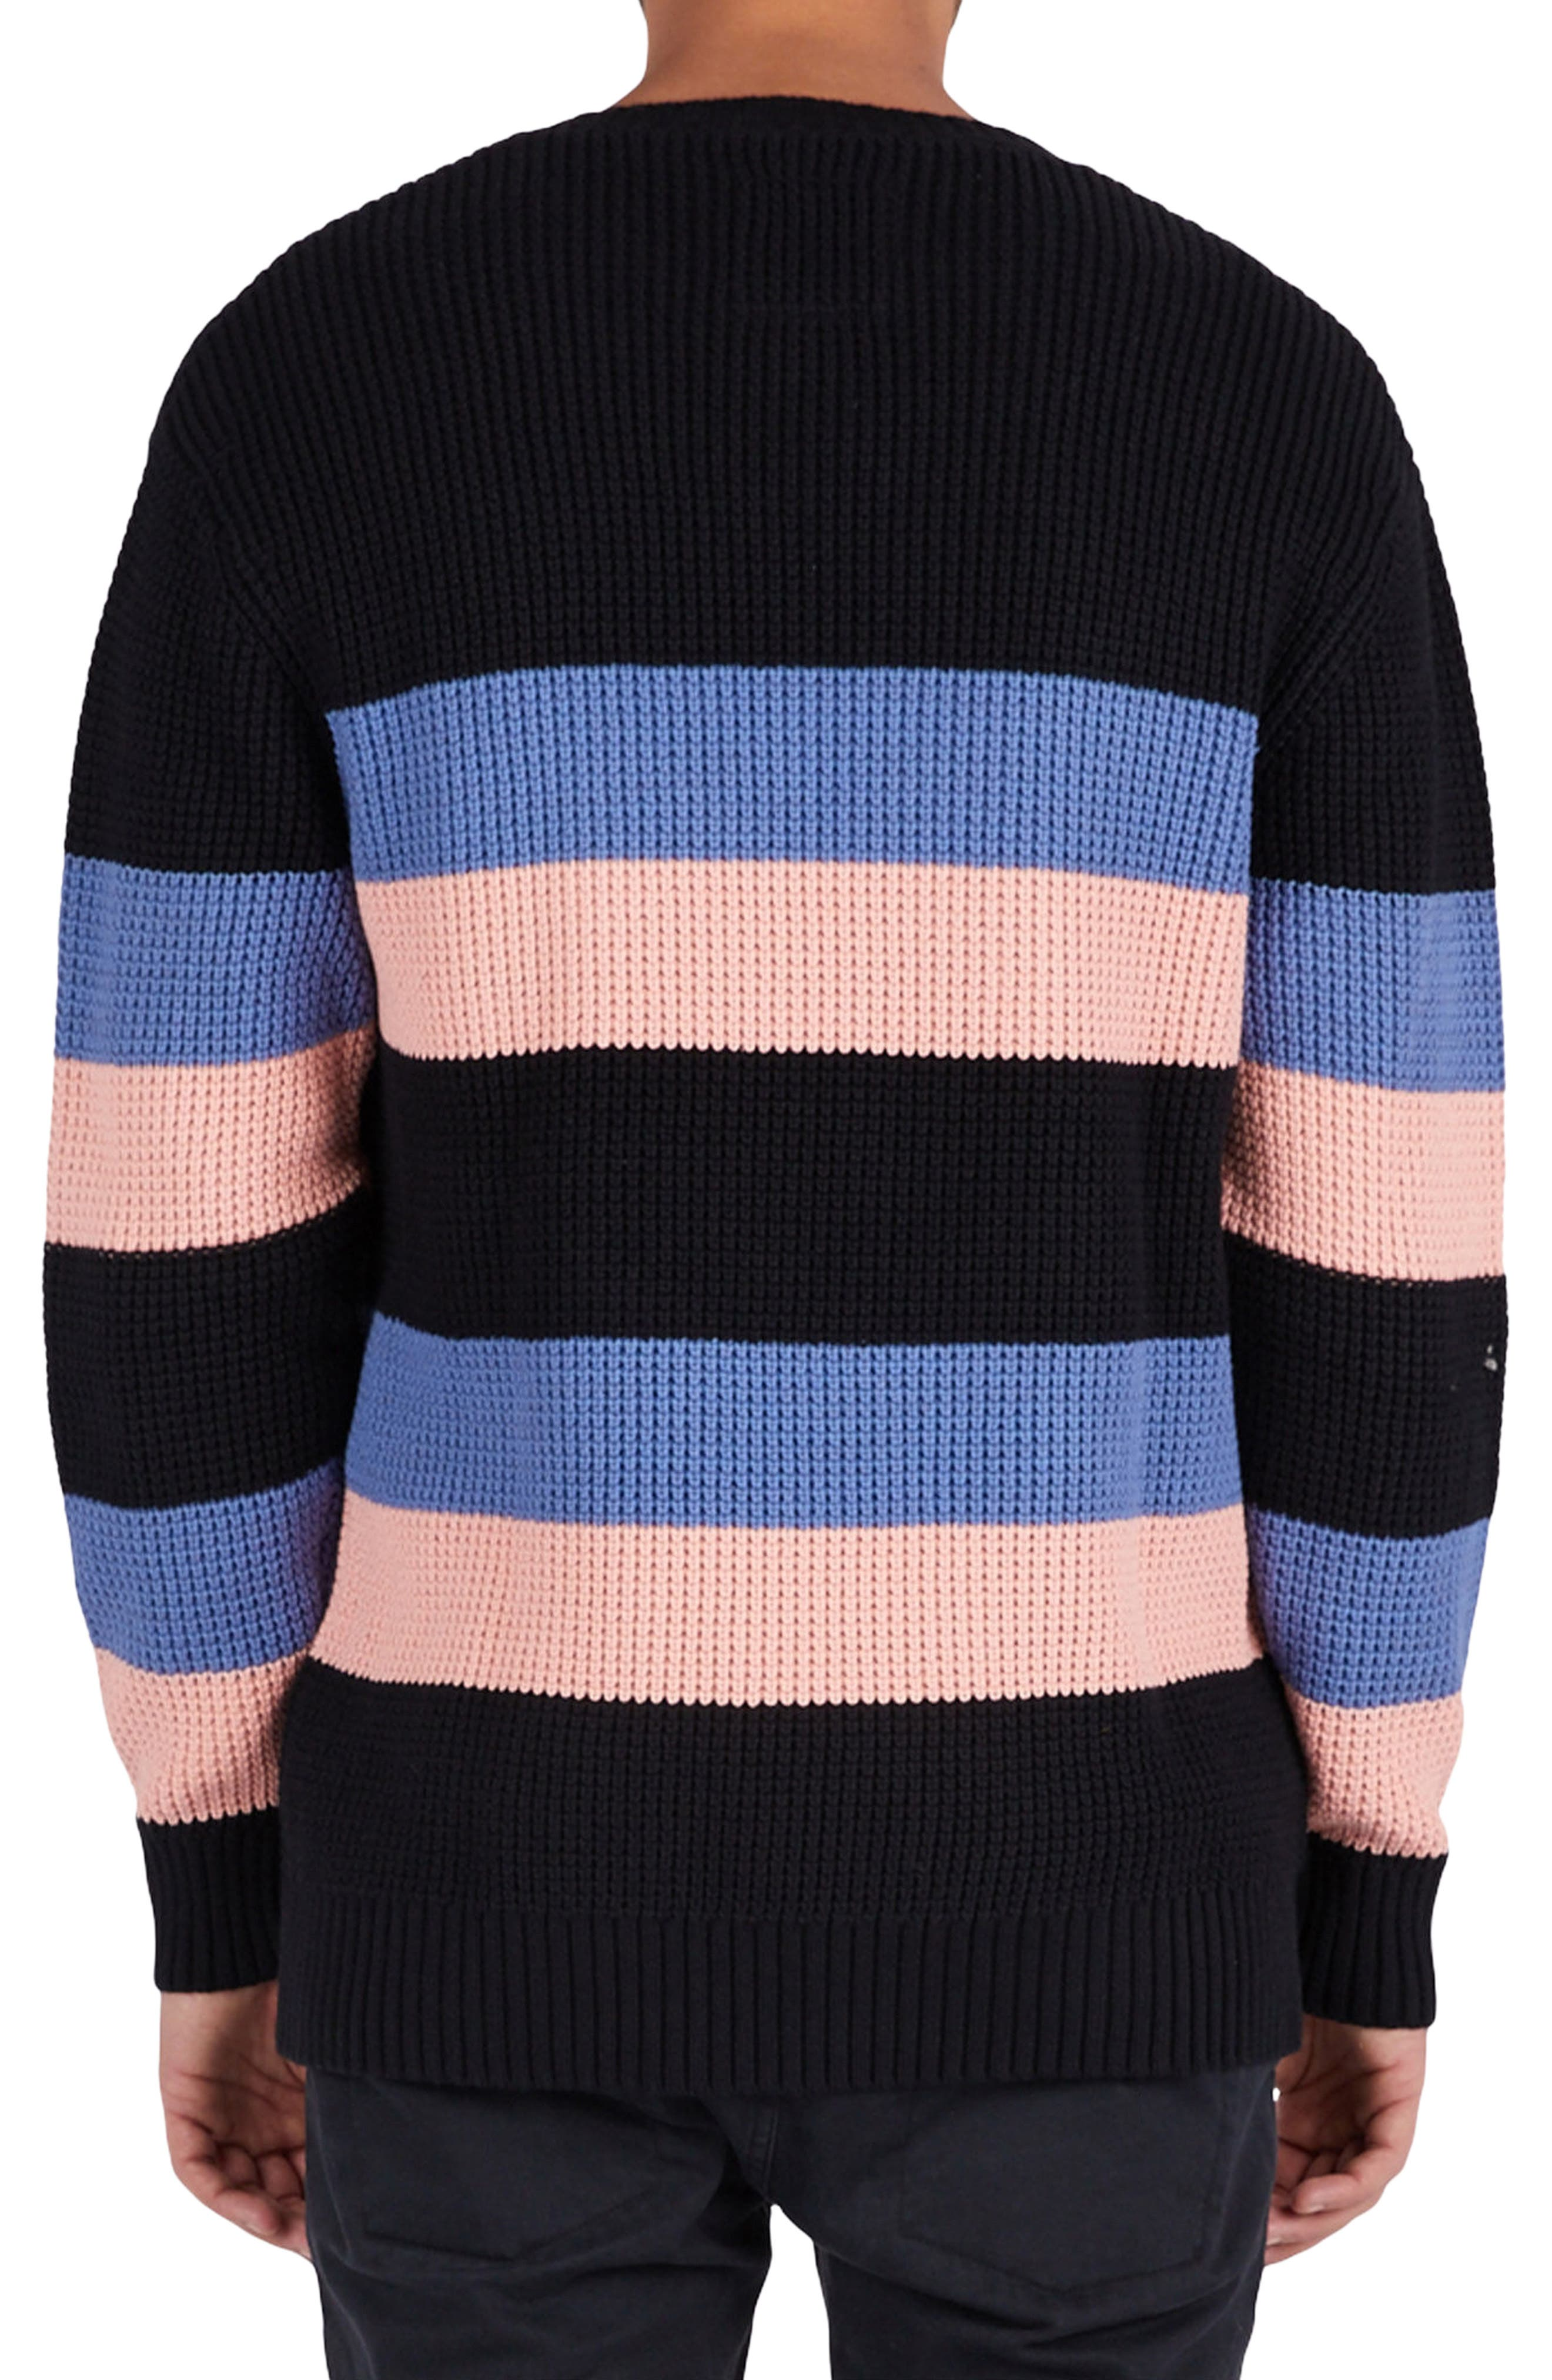 Rugby Stripe Sweater,                             Alternate thumbnail 2, color,                             001